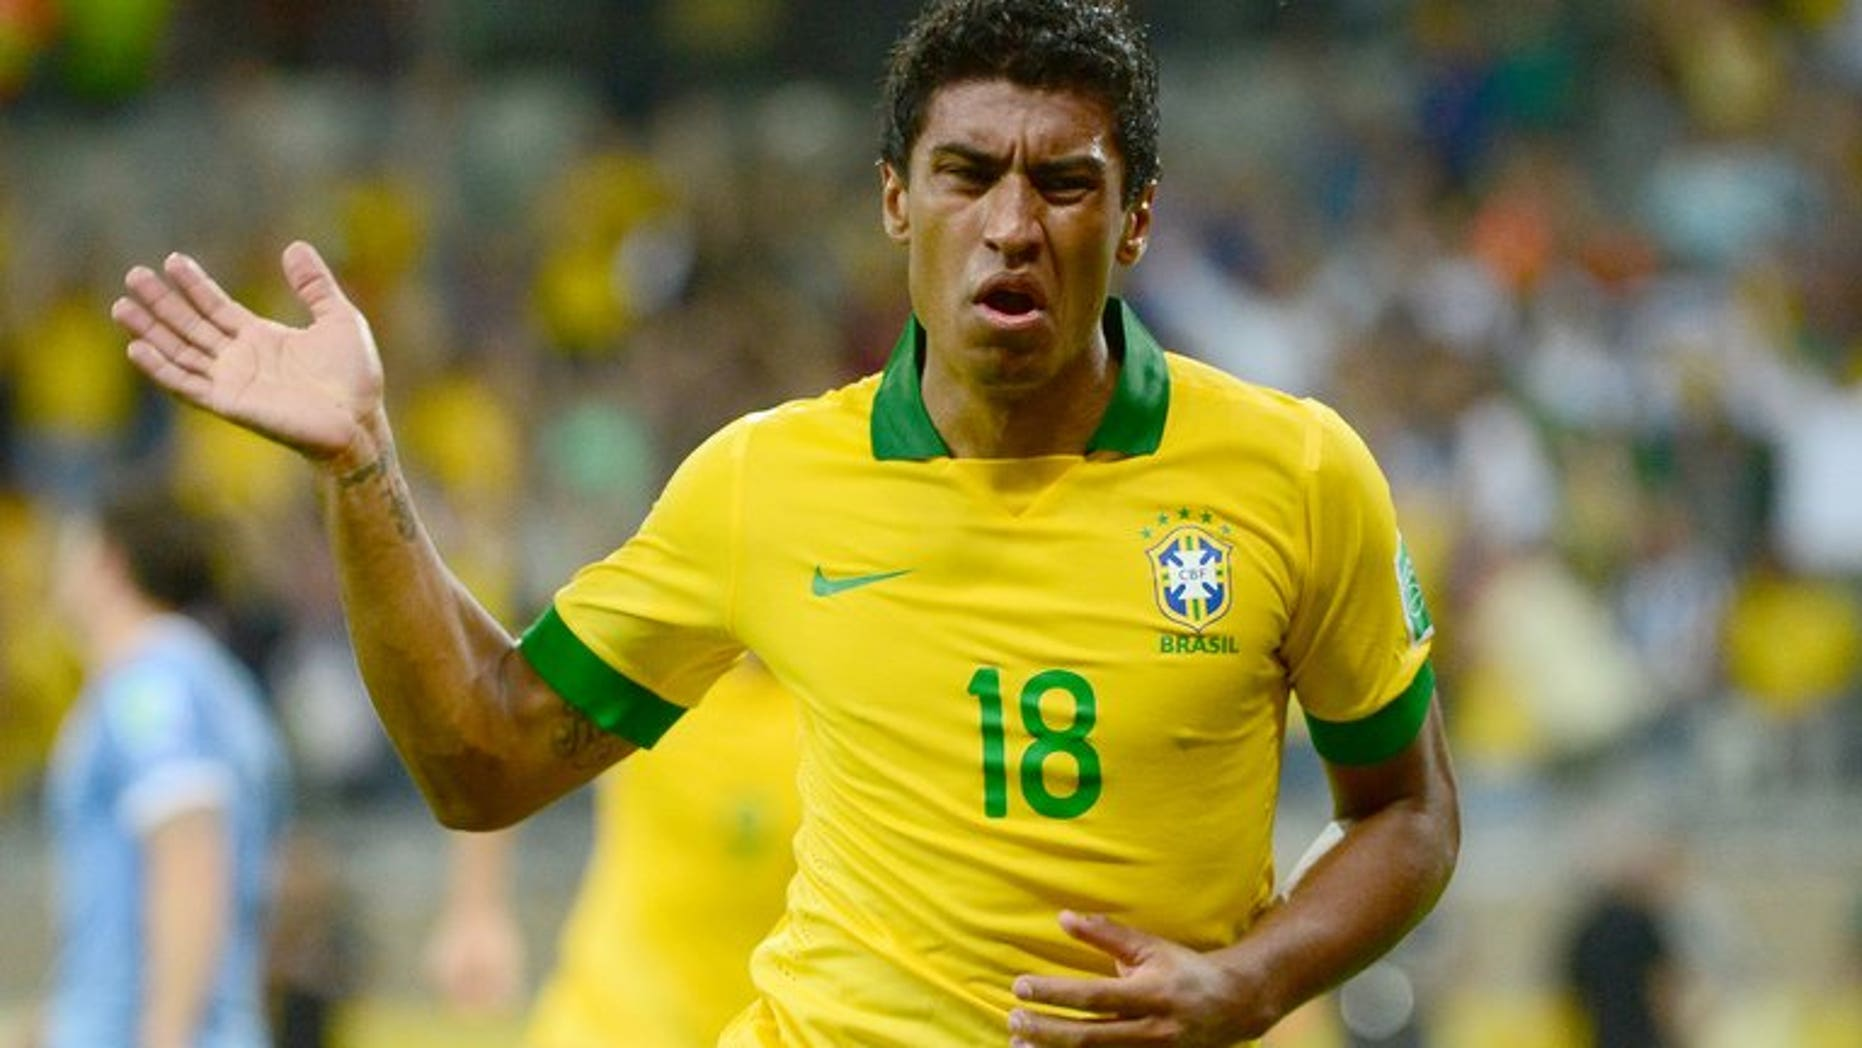 Brazil's Paulinho celebrates after scoring against Uruguay during their Confederations Cup semi-final match in Belo Horizonte, on June 26, 2013. Paulinho has announced he is leaving Corinthians for English Premier League side Tottenham Hotspur.